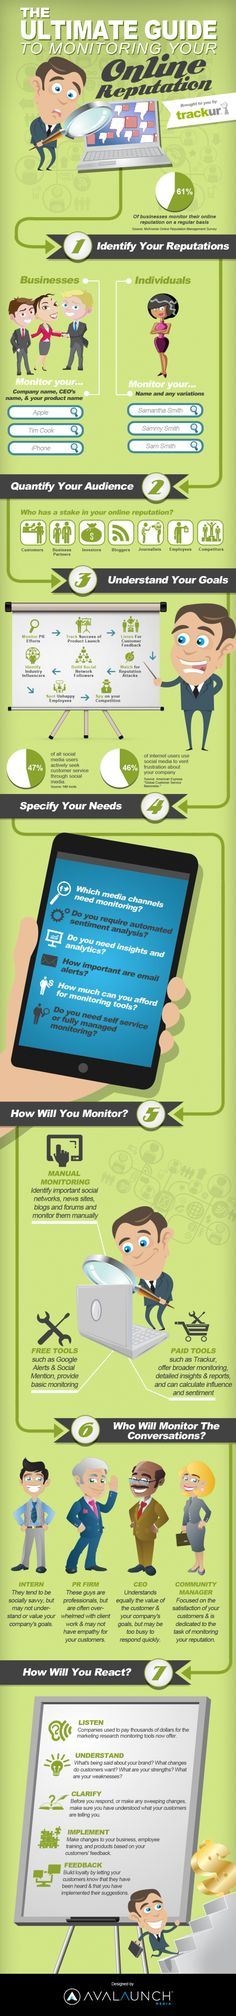 The Ultimate Guide To Monitoring Your Online Reputation [infographic] #ereputation